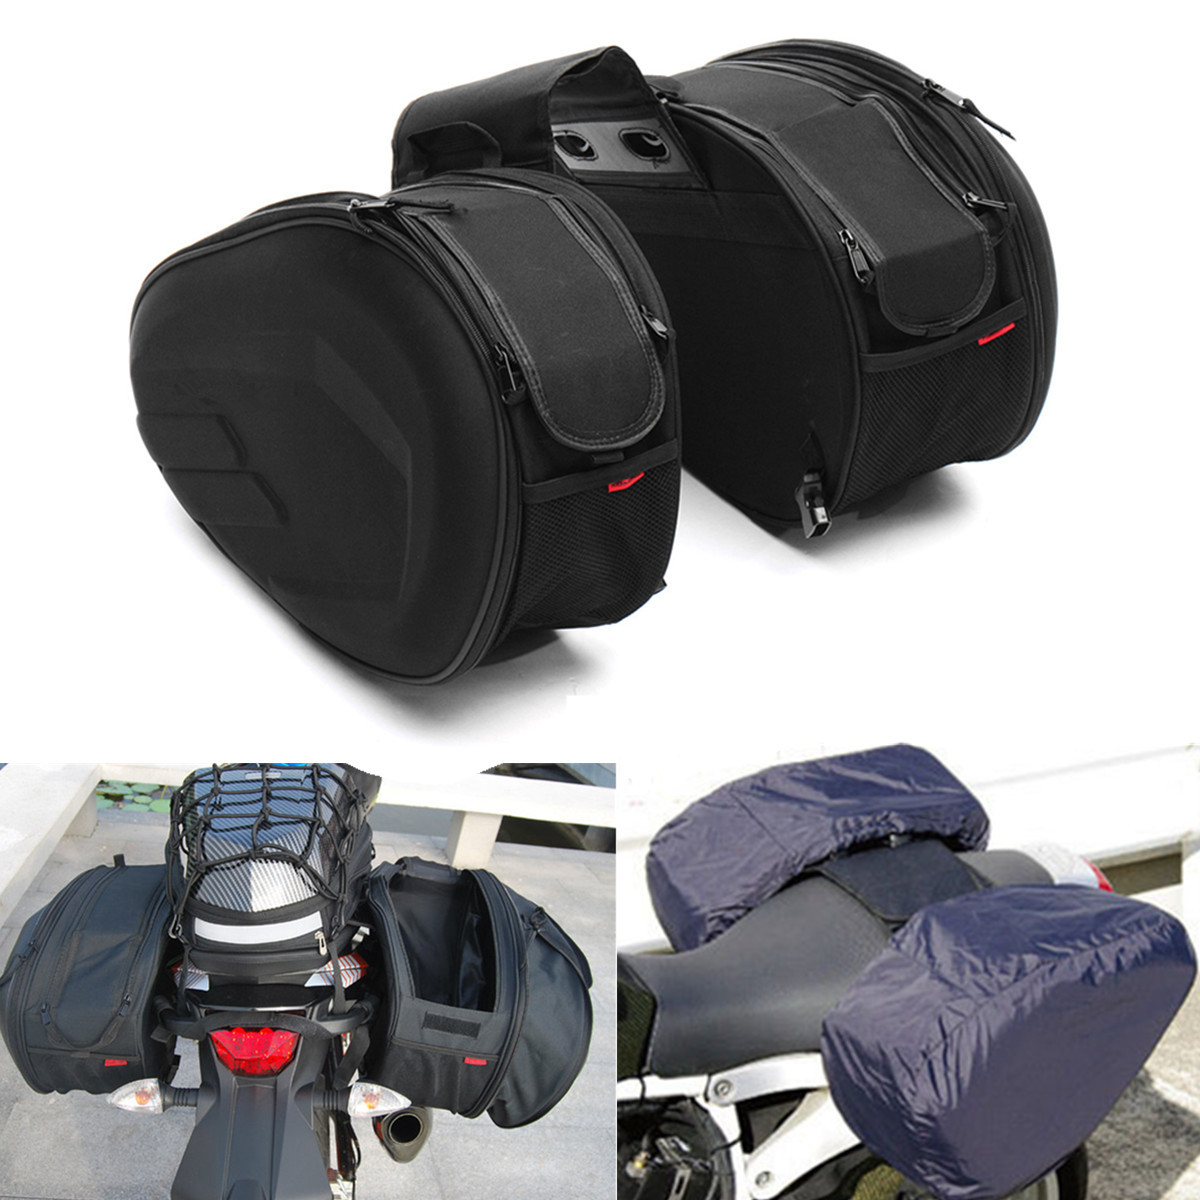 цена на Autoleader 58L Large Capacity Multi-use Expandable Motorcycle Rear Seat Luggage Saddle Bag Waterproof Motorcycle Saddle bags